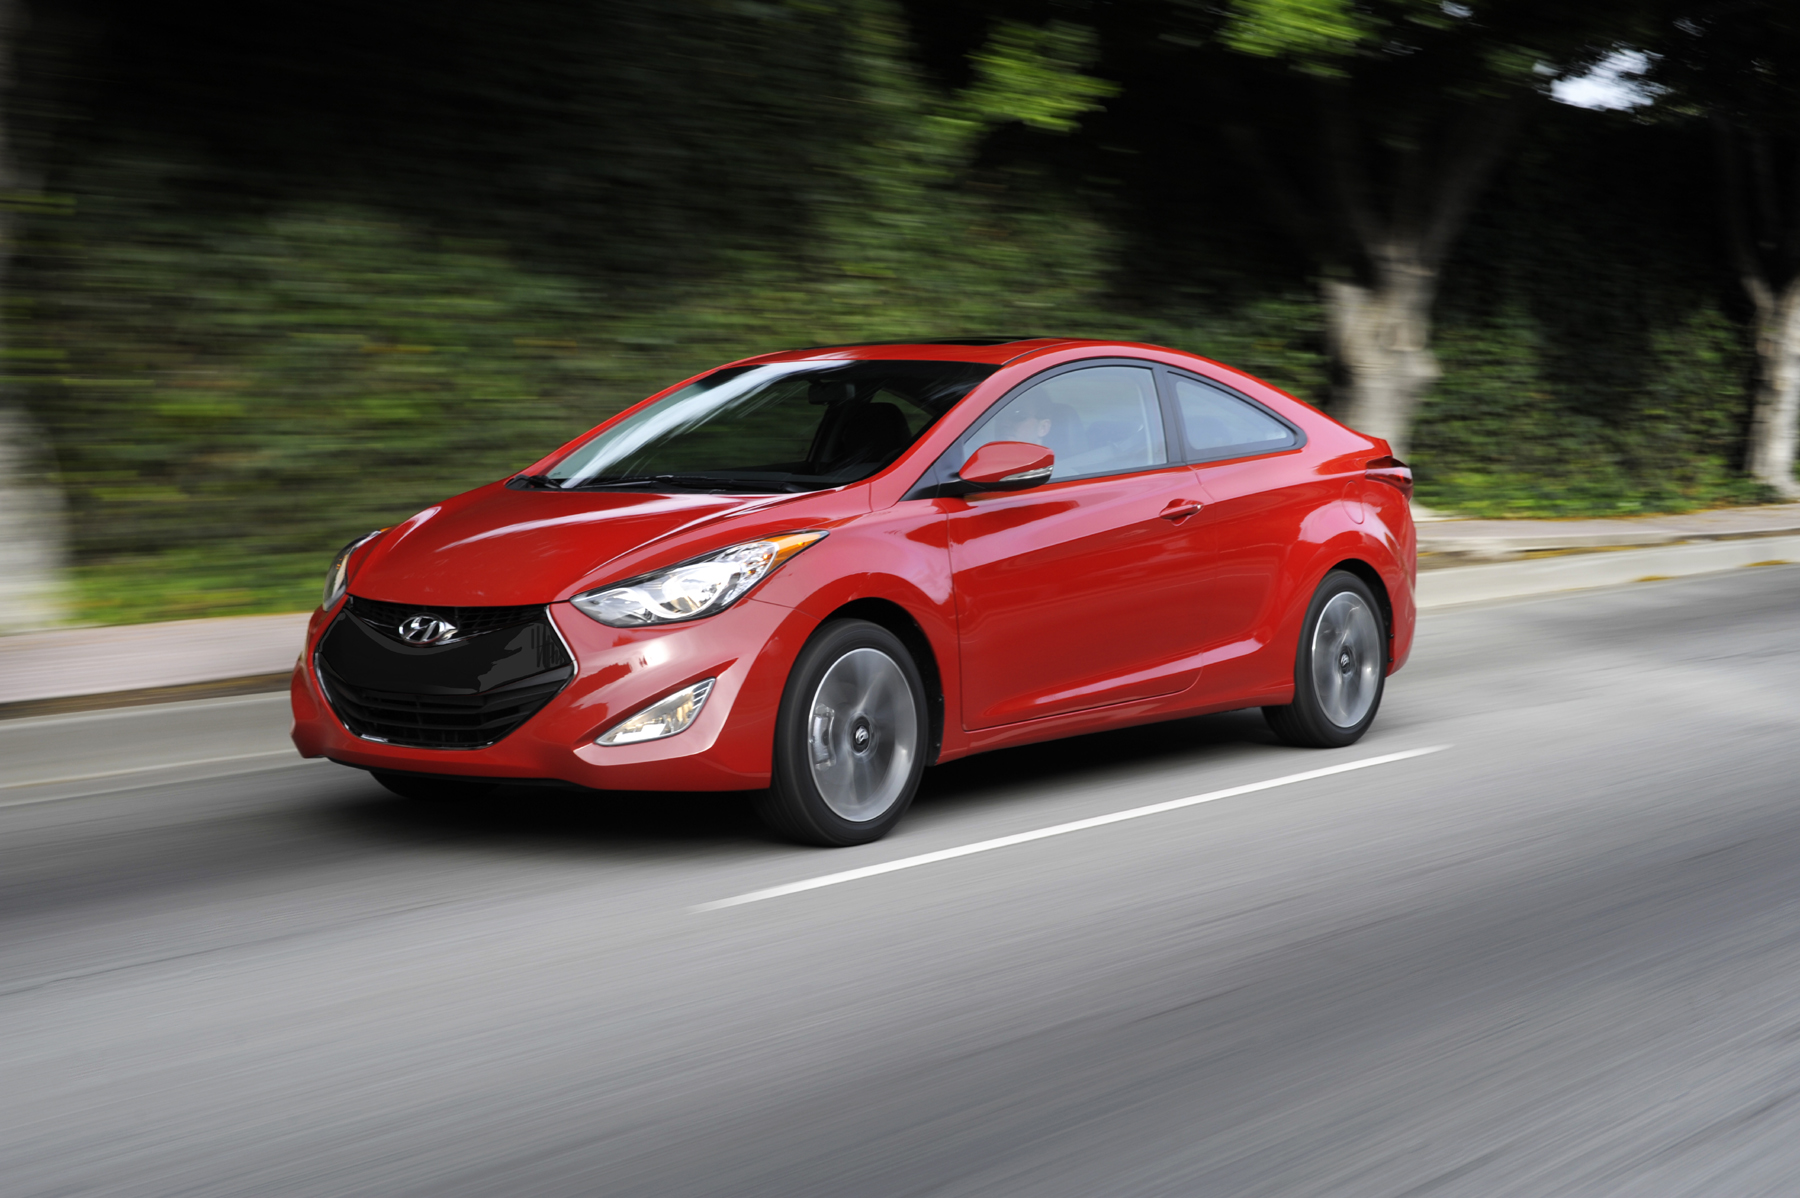 Manufacturer photo: Hyundai's signature hexagonal front fascia opening and jeweled swept-back headlights give the 2013 Elantra Coupe a lean, aggressive demeanor